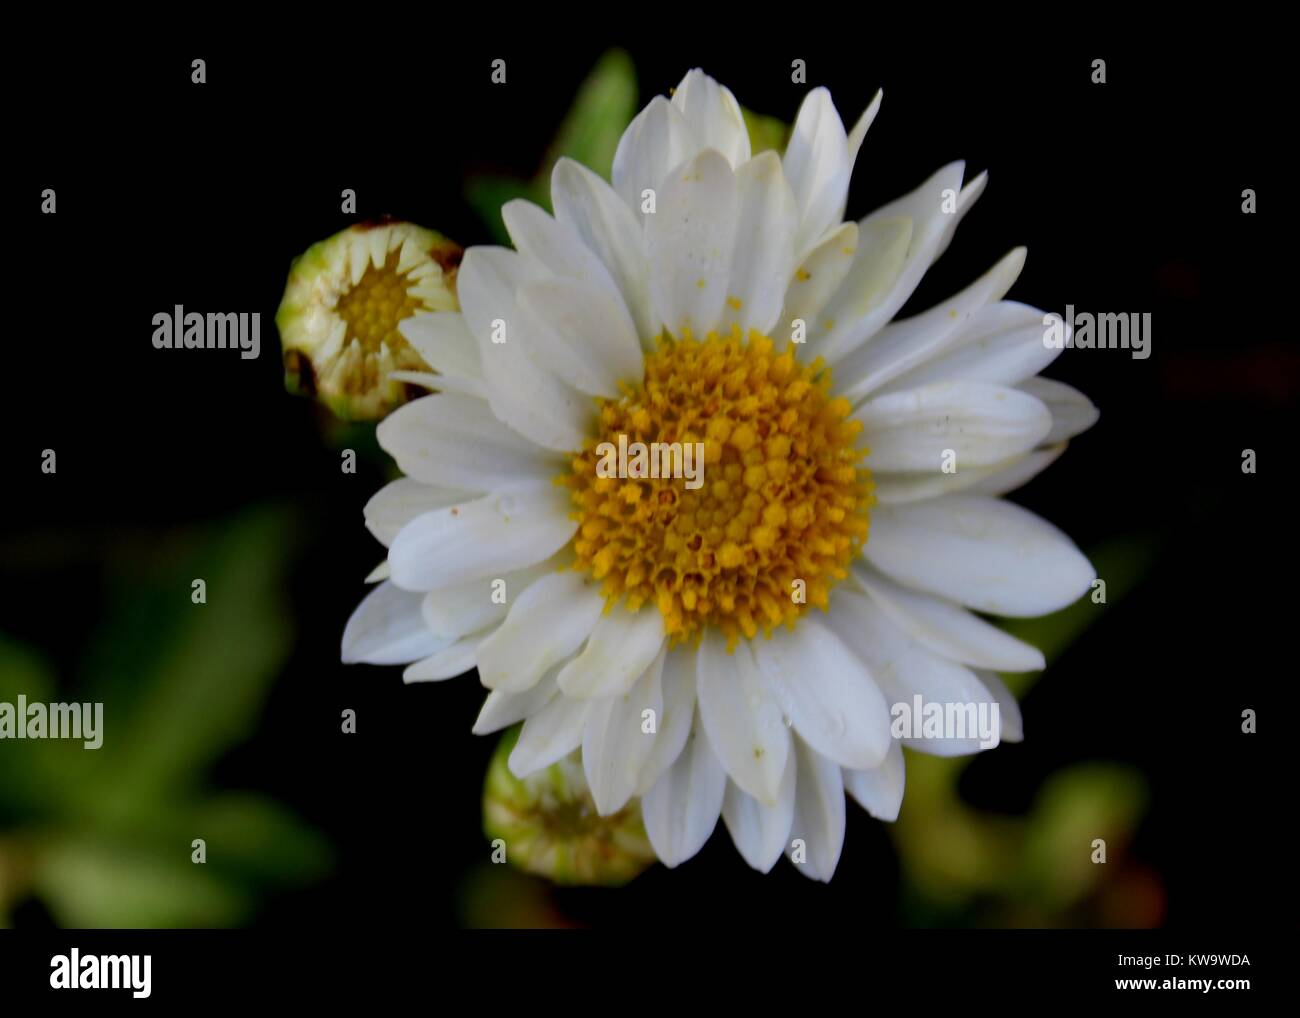 Macro Close Up View Of White Color Daisy Flower Petals In A